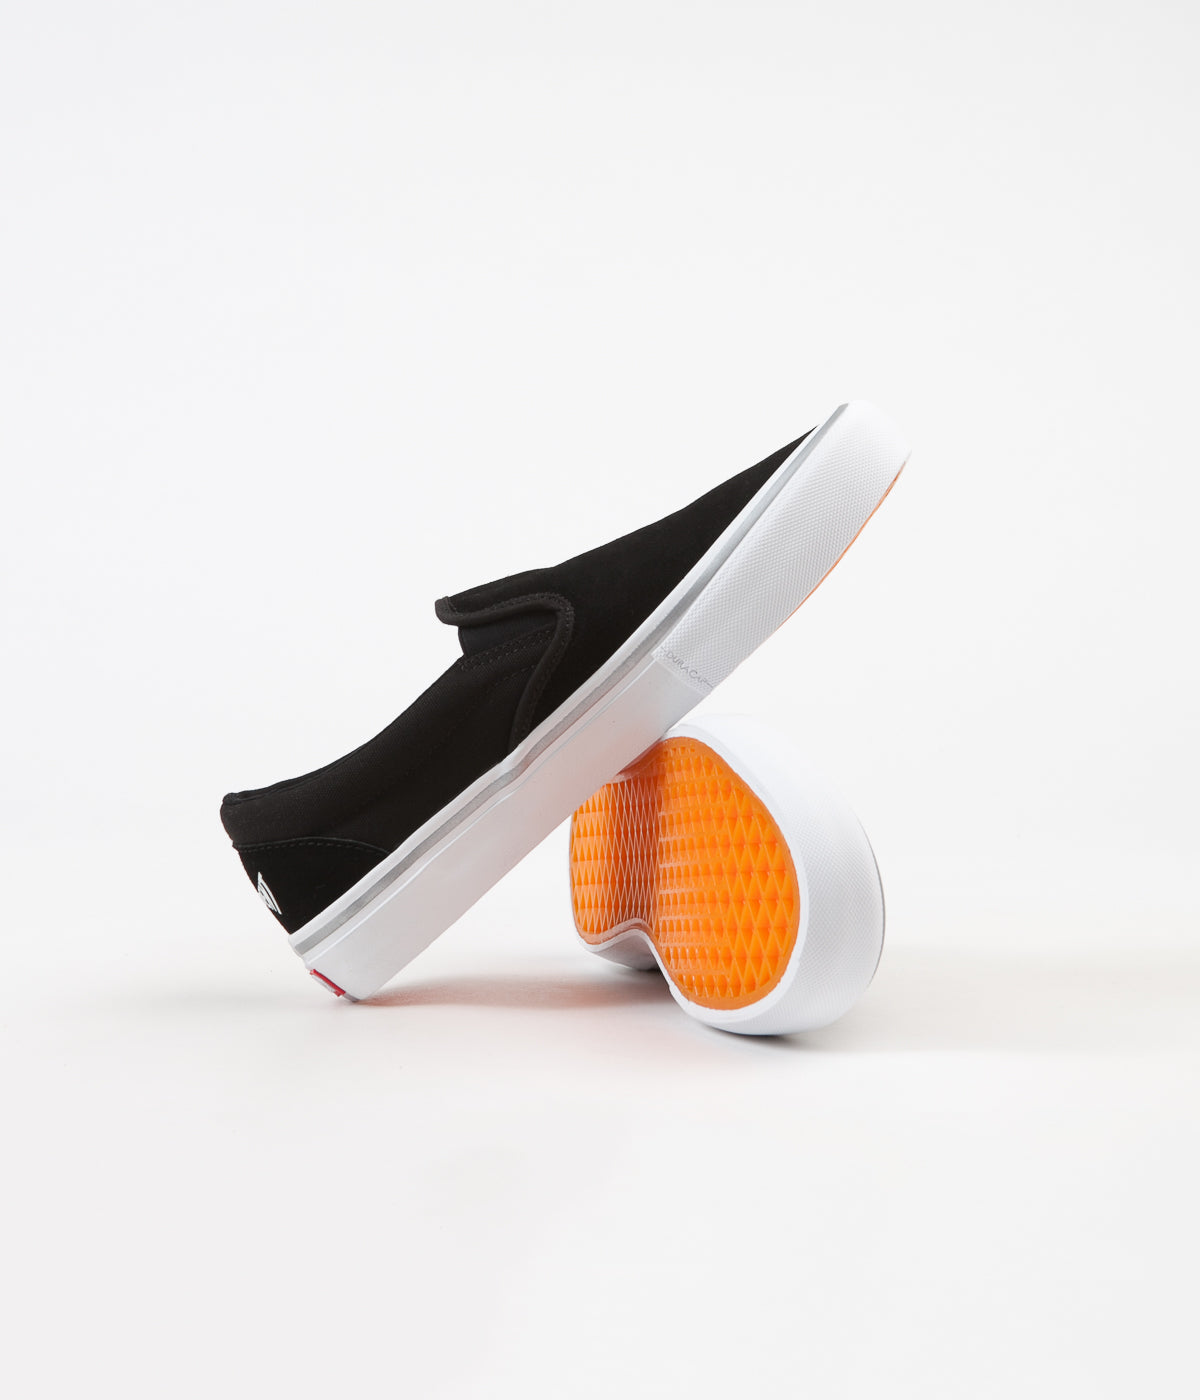 Vans x Independent Slip On Pro Shoes - Black / White